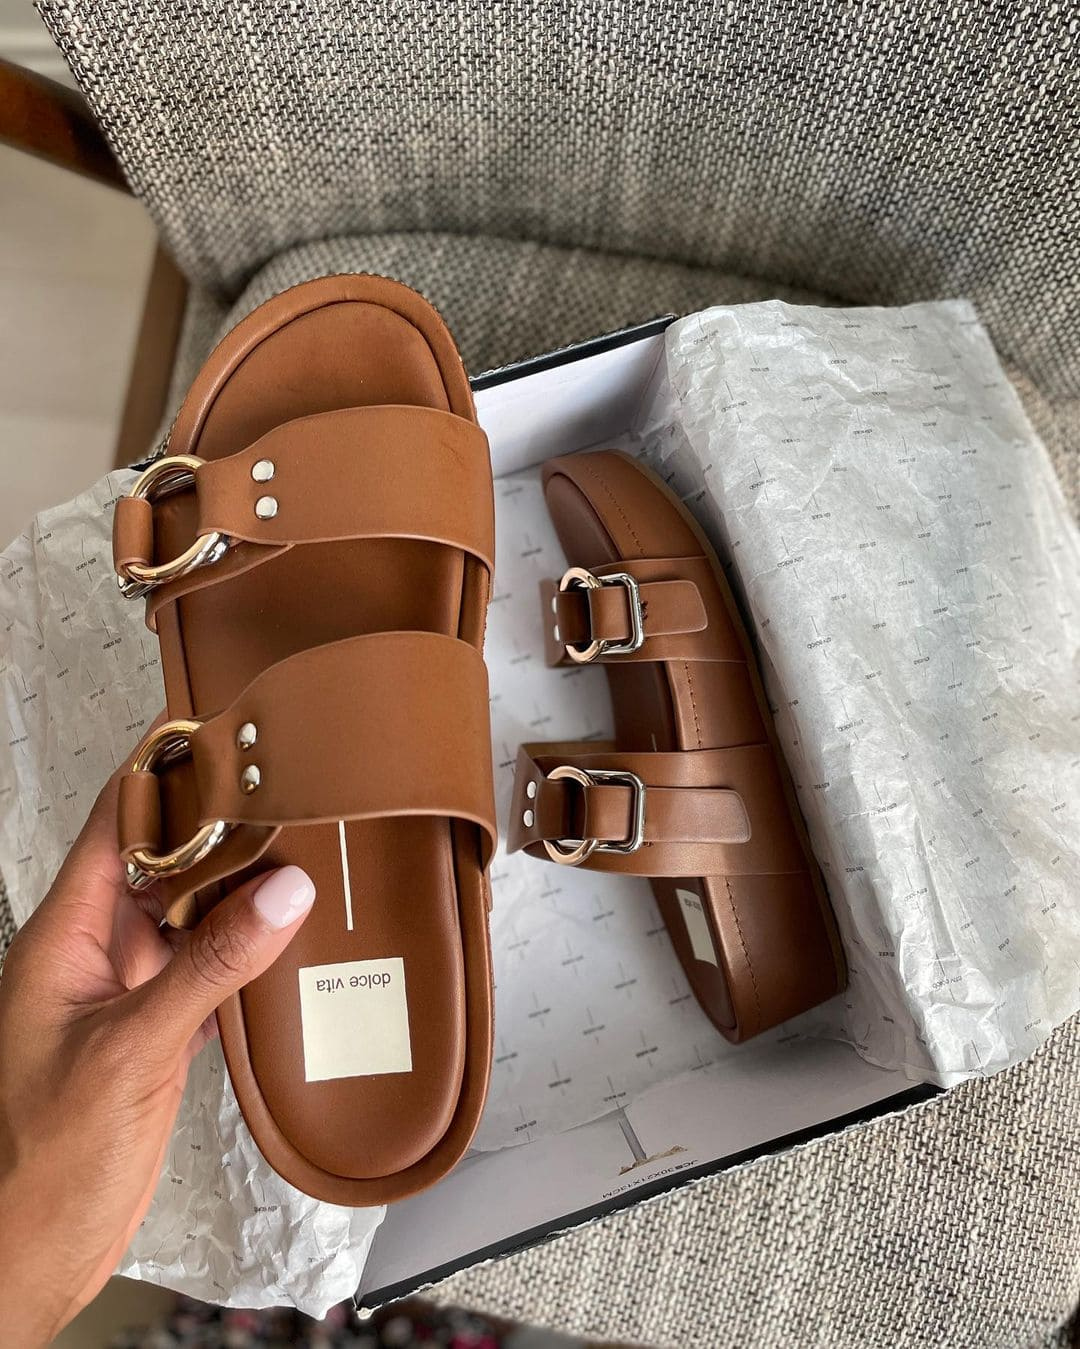 A molded footbed supports your every step from beach bistro to the late-night show in Dolce Vita's double-strap platform sandal with shiny geometric buckles